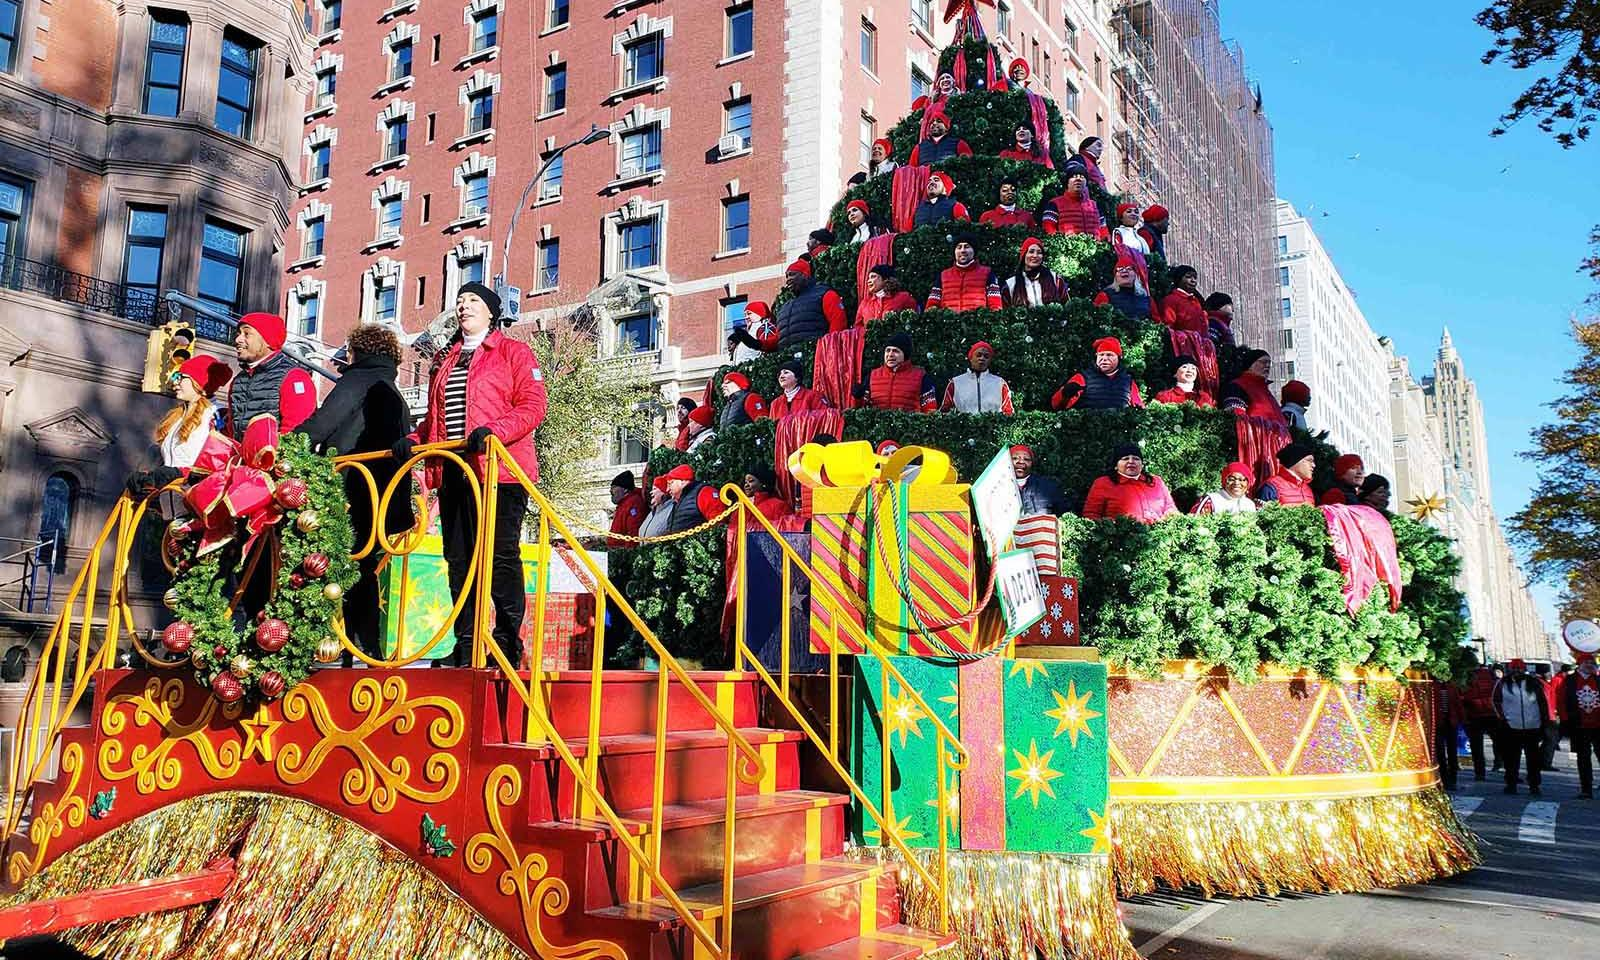 Macys Christmas Parade 2019 ▷ Macy's Thanksgiving Day Parade 2019 | With Parade Route Map